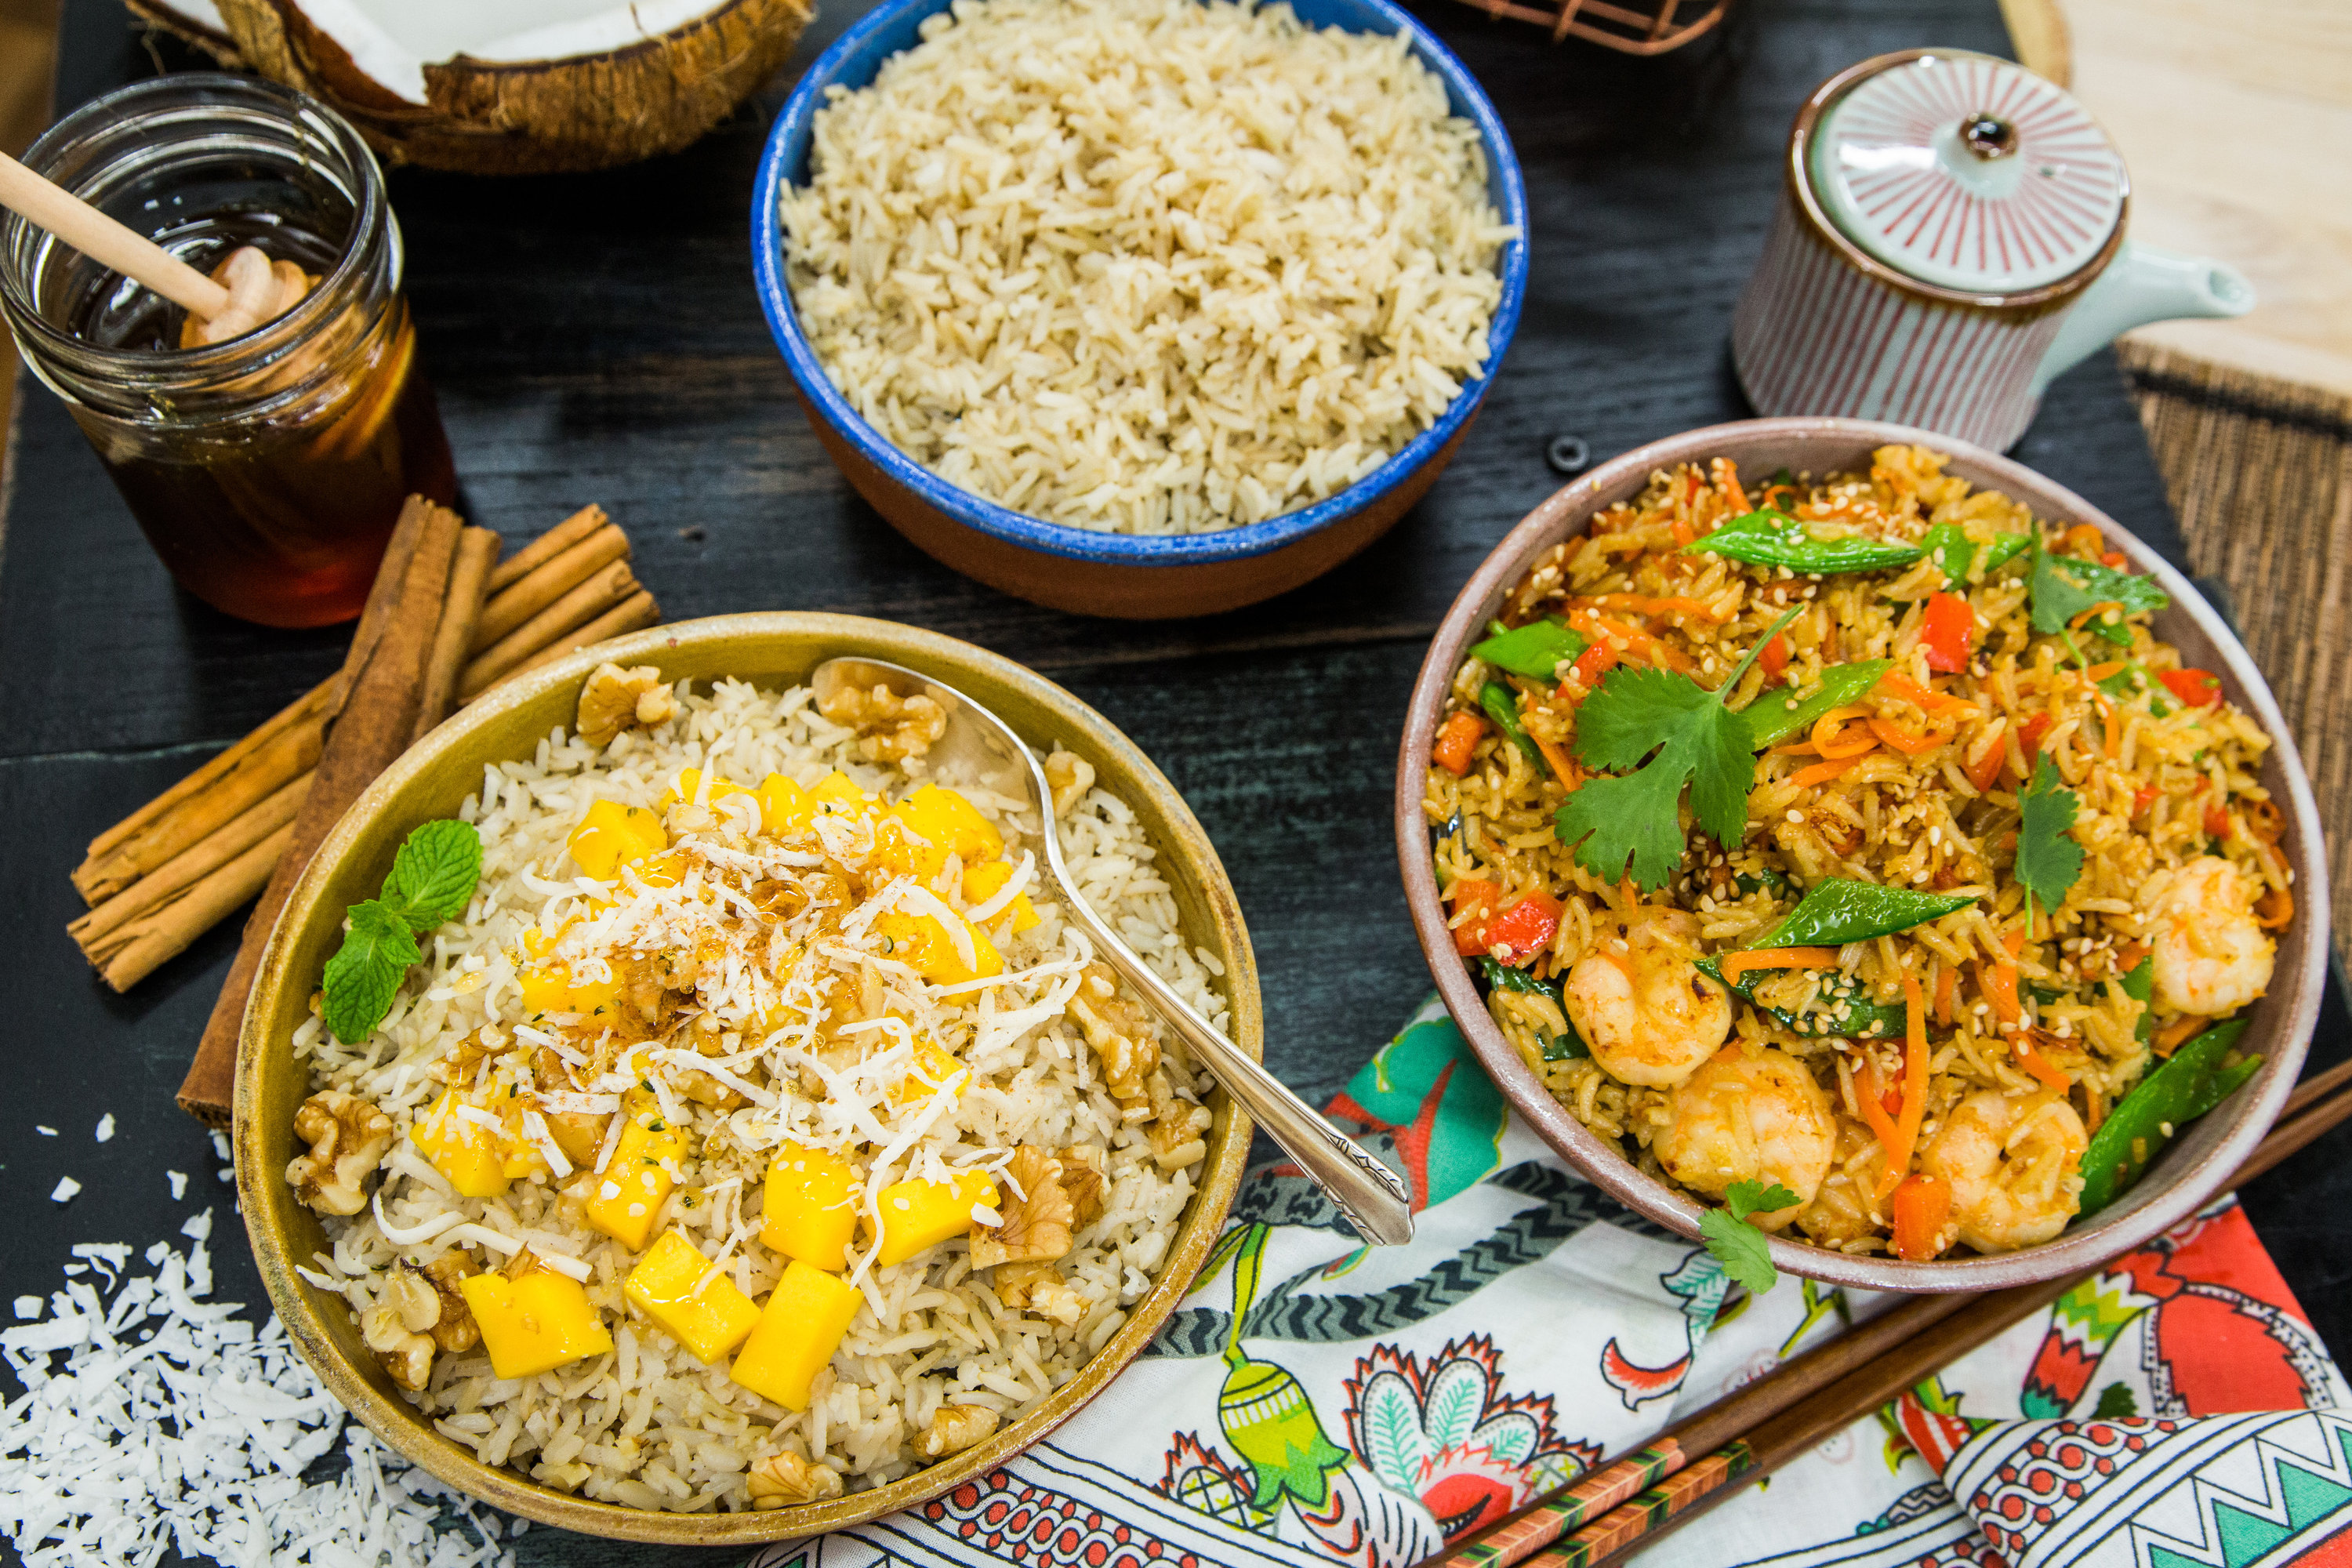 Recipes home family coconut rice dishes hallmark channel - Six alternative uses of rice at home ...